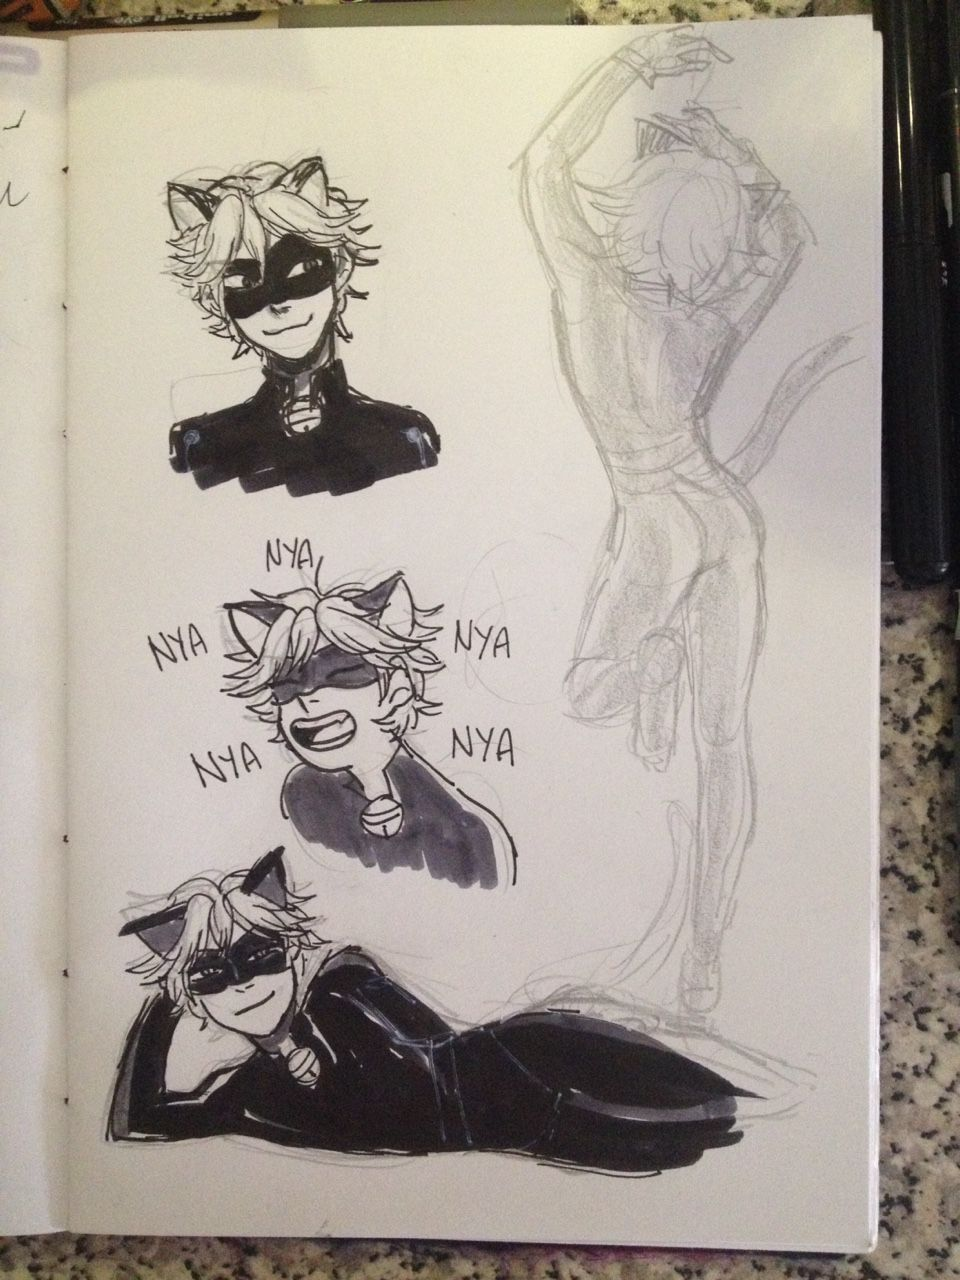 chat noir is so fun to draw